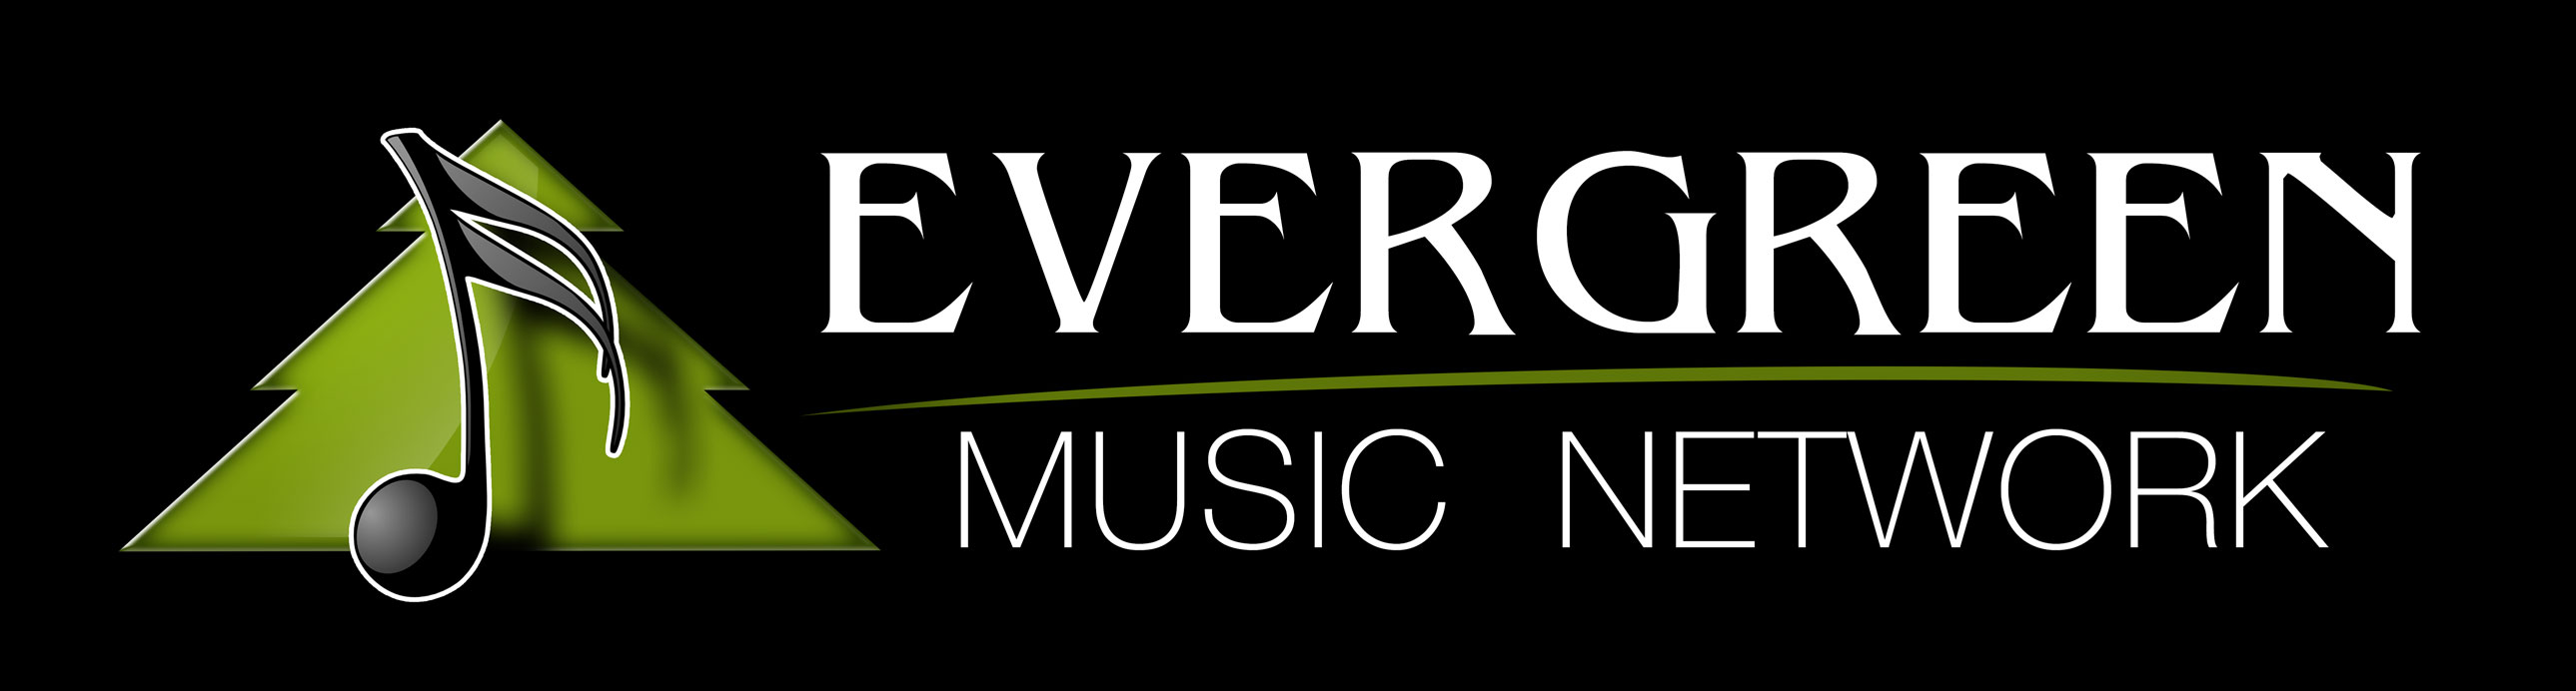 Evergreen Music Network Logo